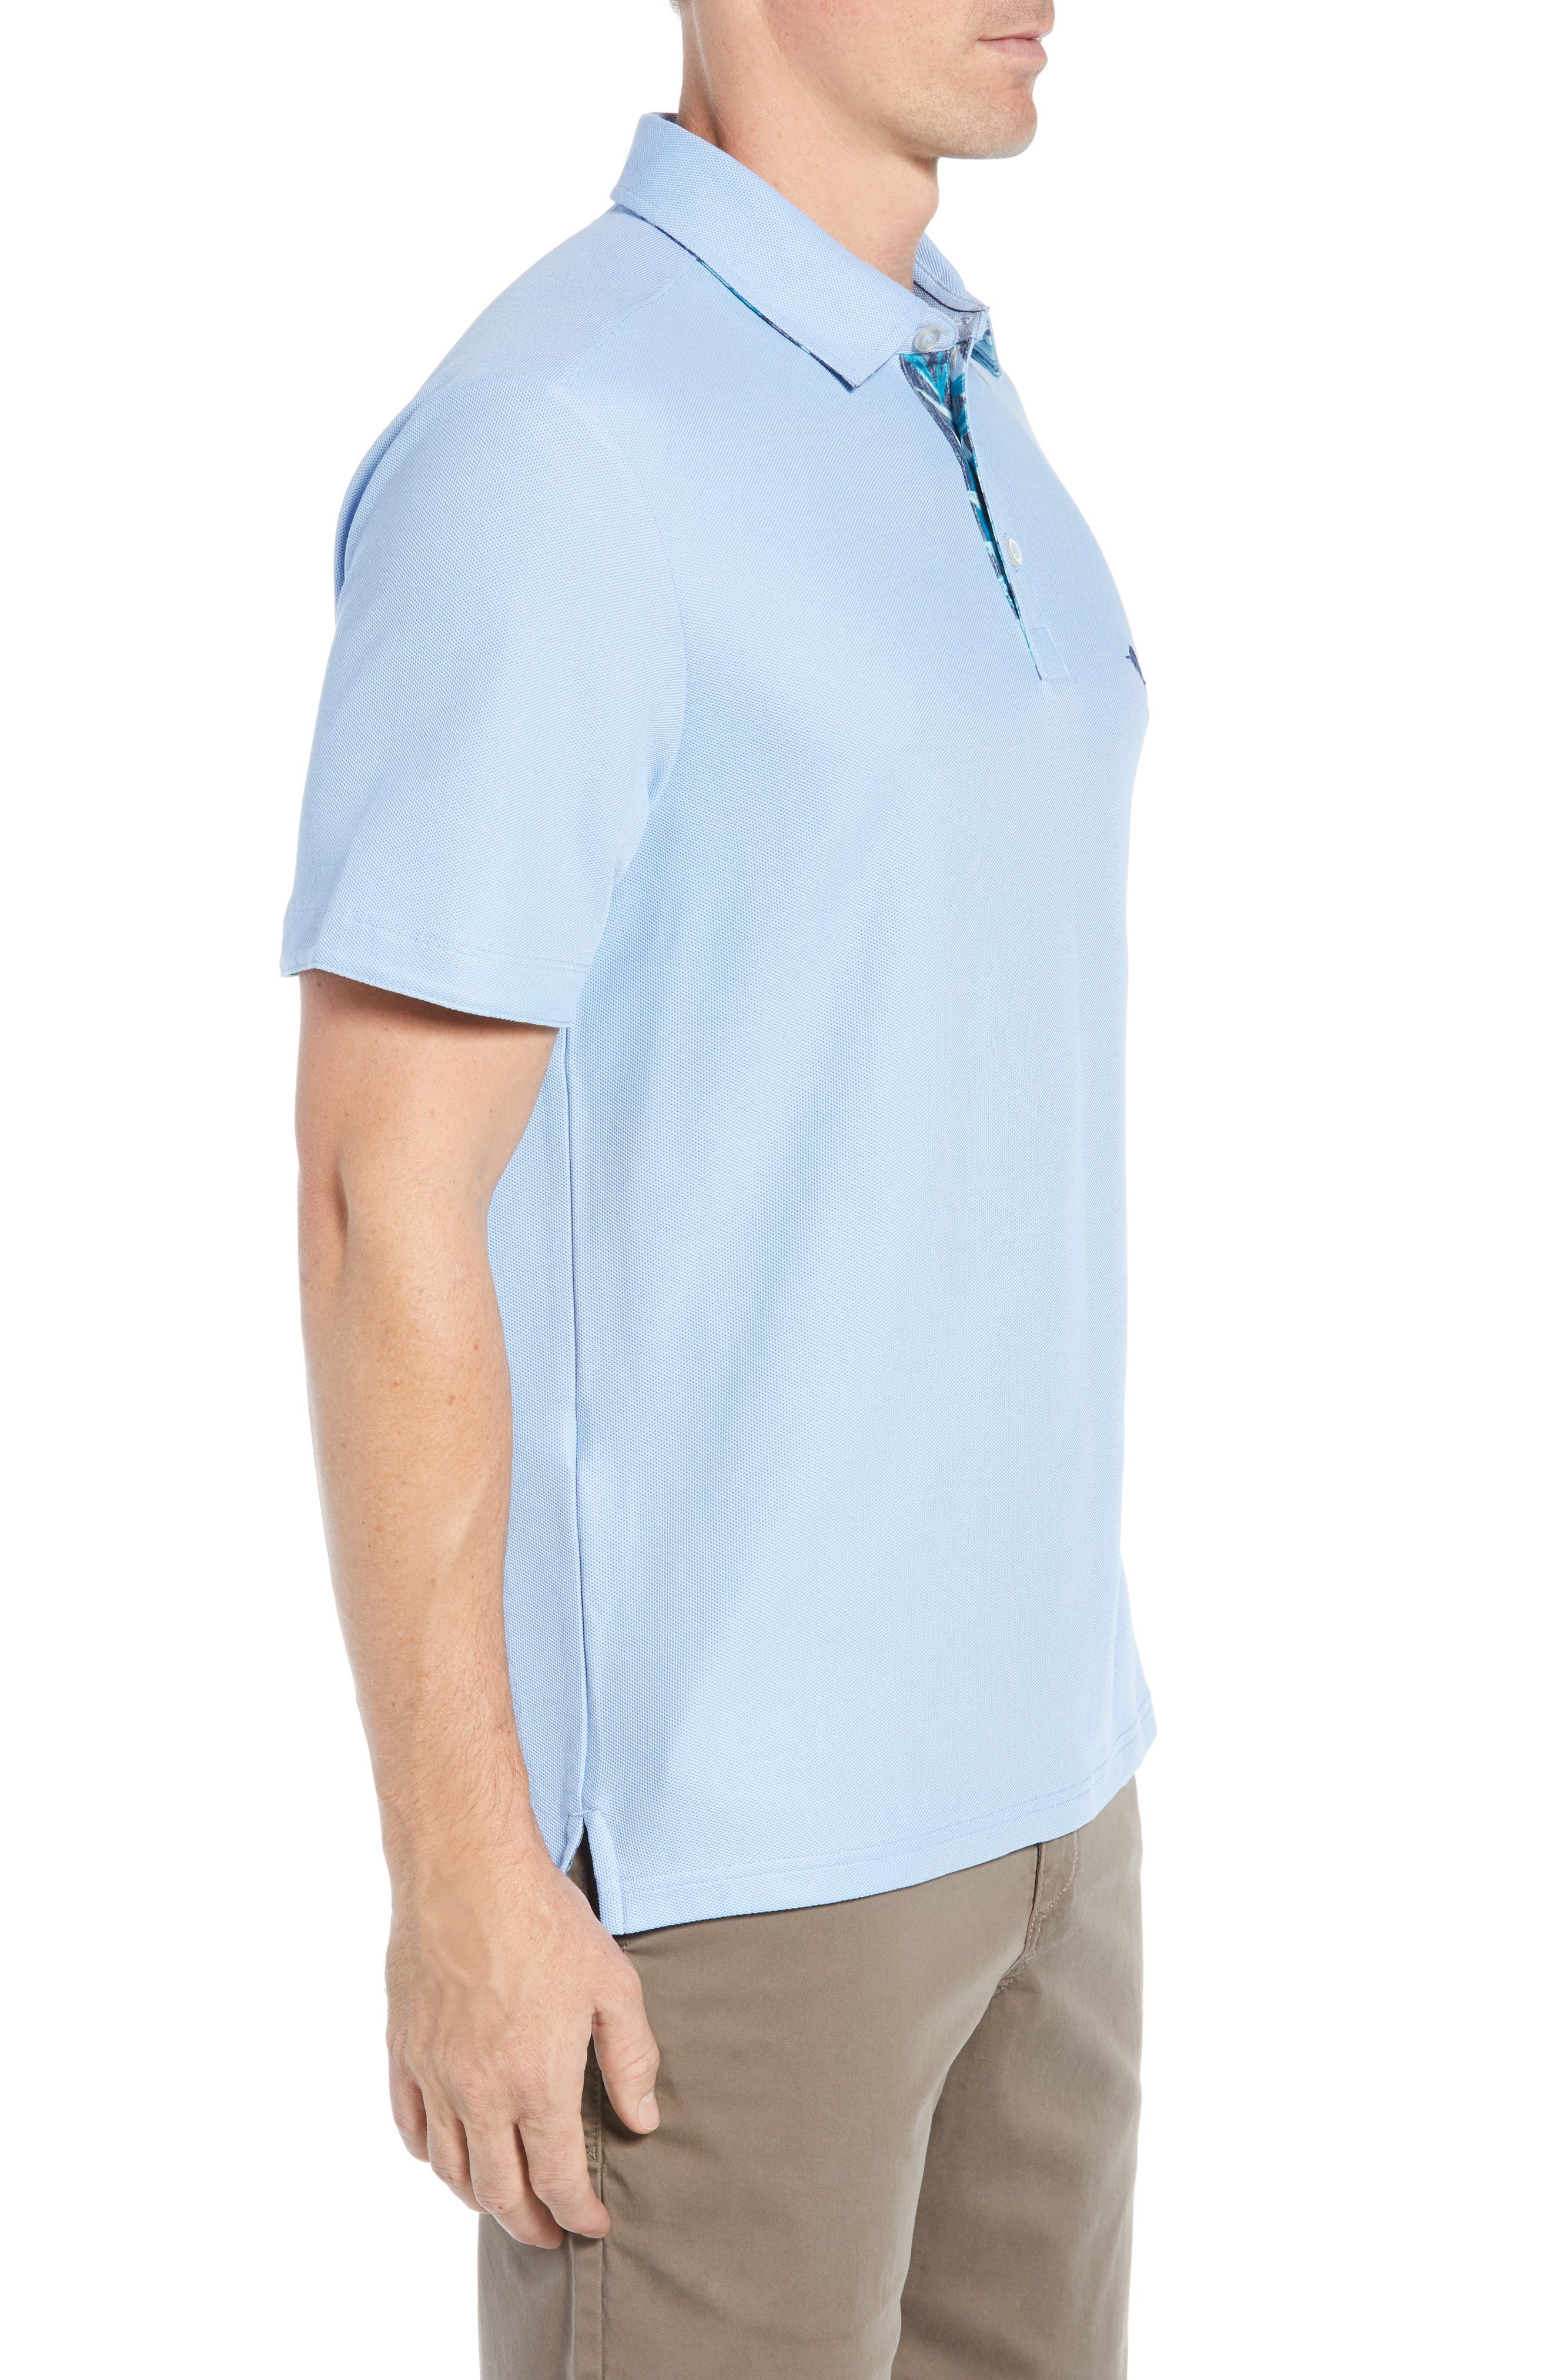 Five O'Clock Polo Shirt,                             Alternate thumbnail 3, color,                             400